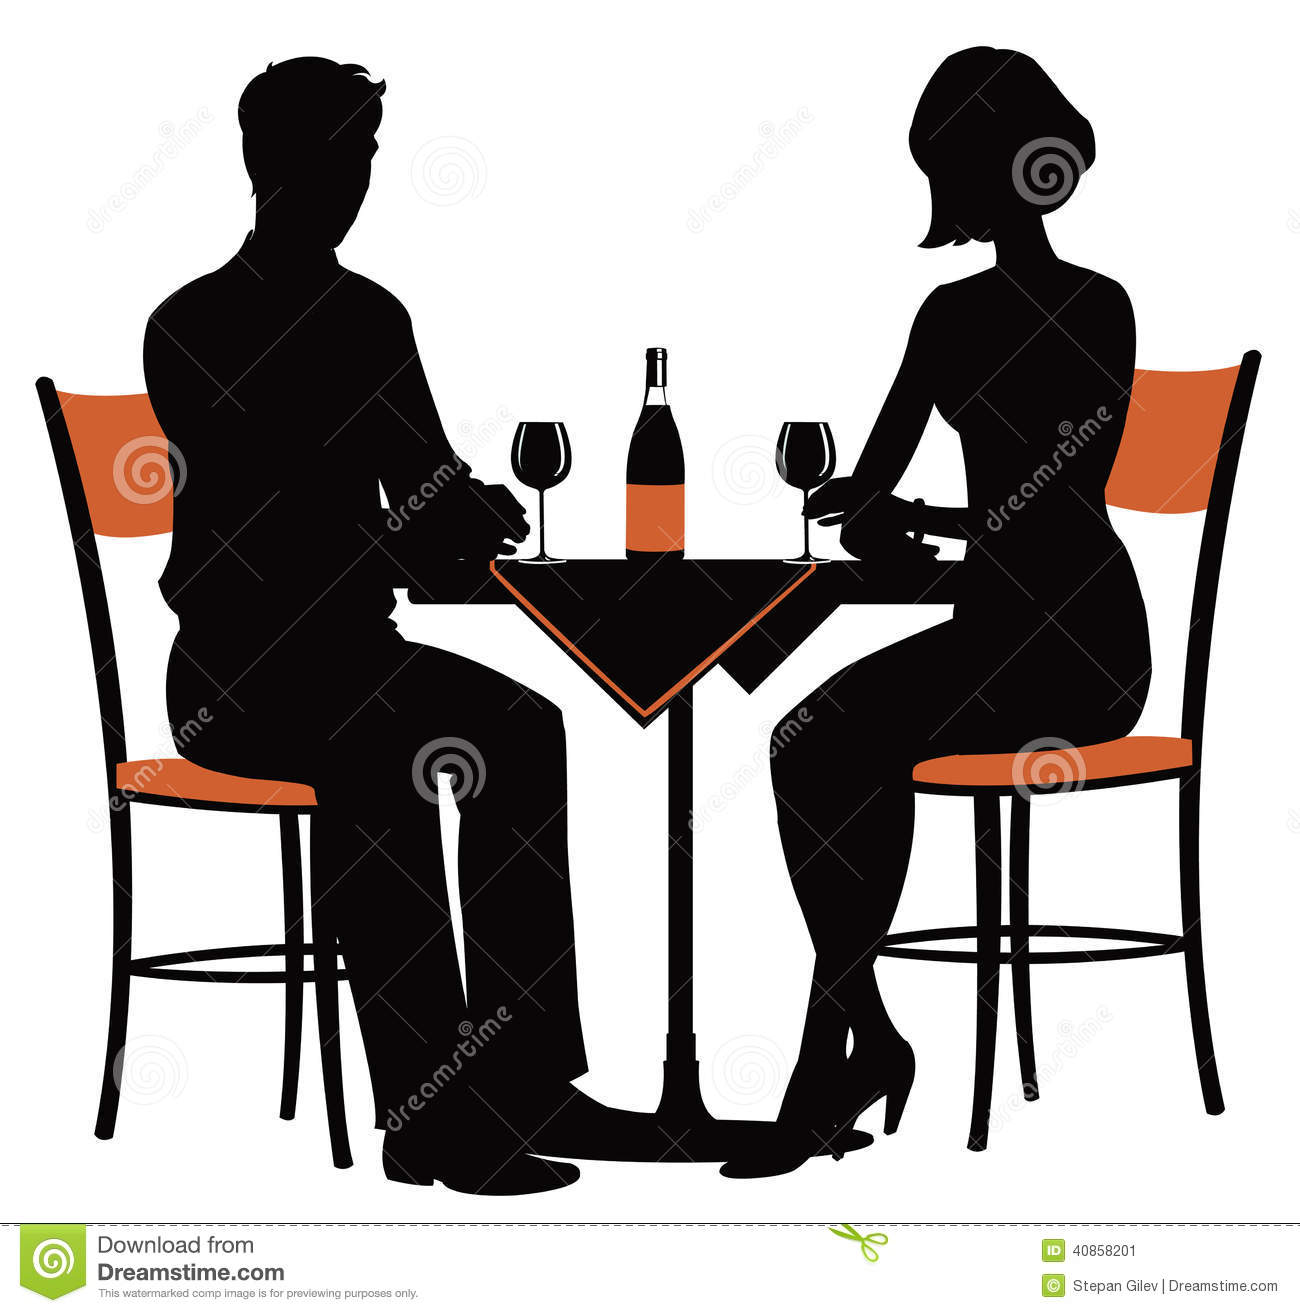 Romantic Dinner For Two Stock Vector - Image: 40858201